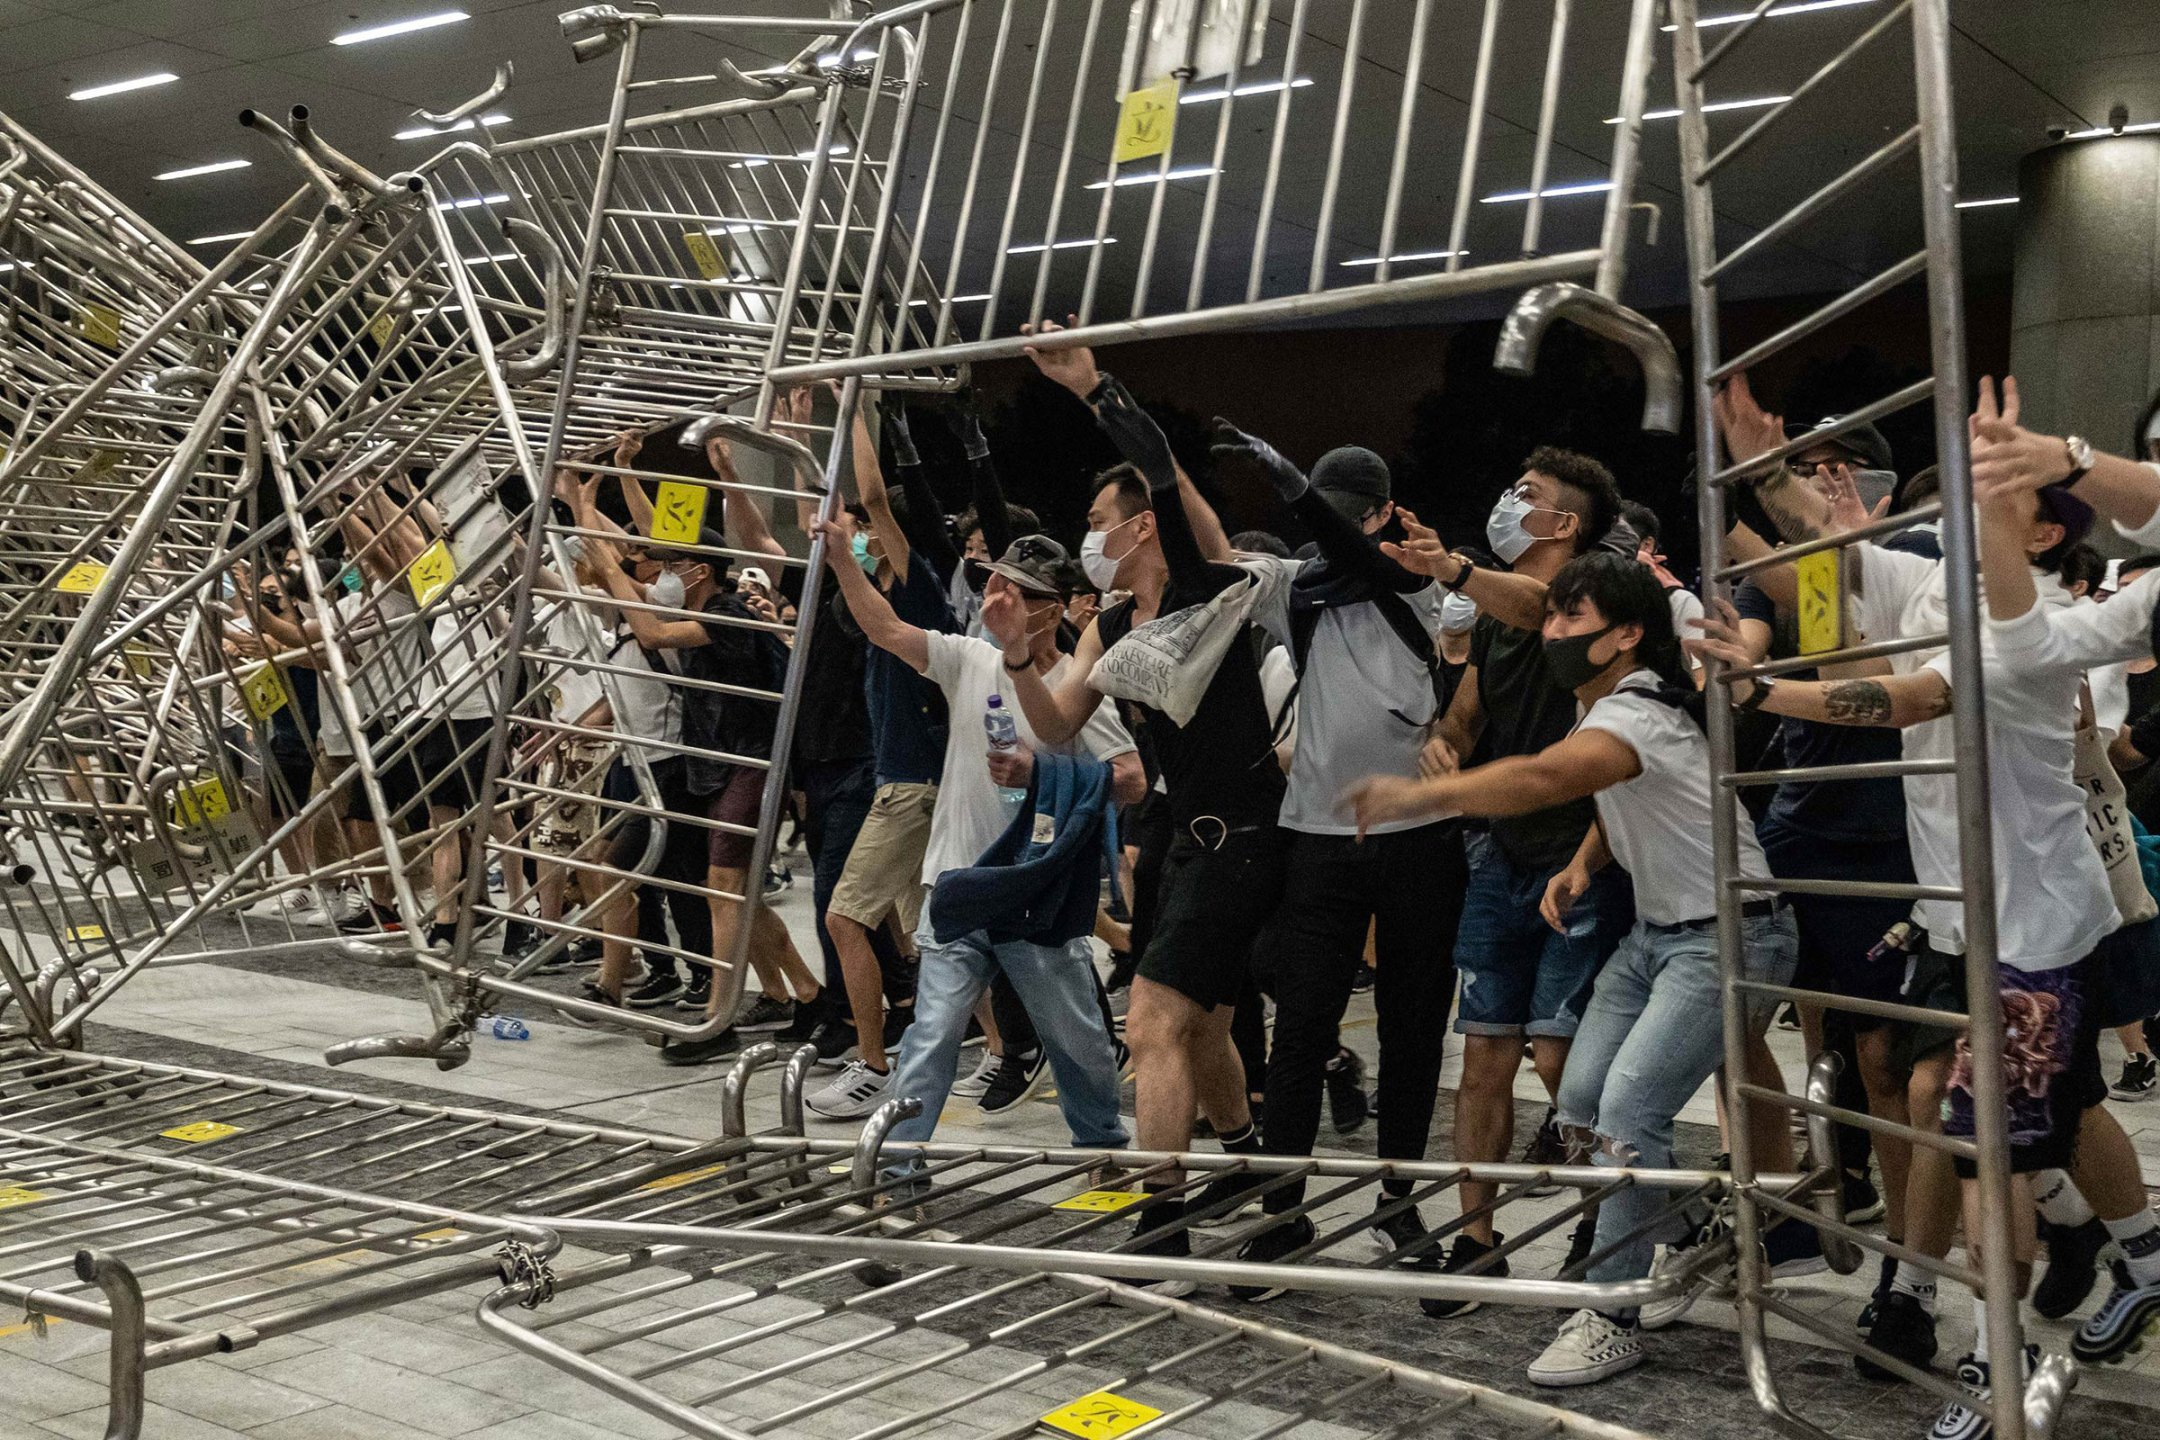 Carrie Lam's proposal to allow extraditions from Hong Kong to mainland China had hardly been announced before the territory's leader felt the head of a frustrated generation. Hundreds of thousands of protesters filled the streets—like these on June 10—then did it the next week, and then the next. At one point they numbered 2 million. The extradition bill did die, but it was too late to stop what it had started: Hong Kong had been transformed, and a new normal had arrived.